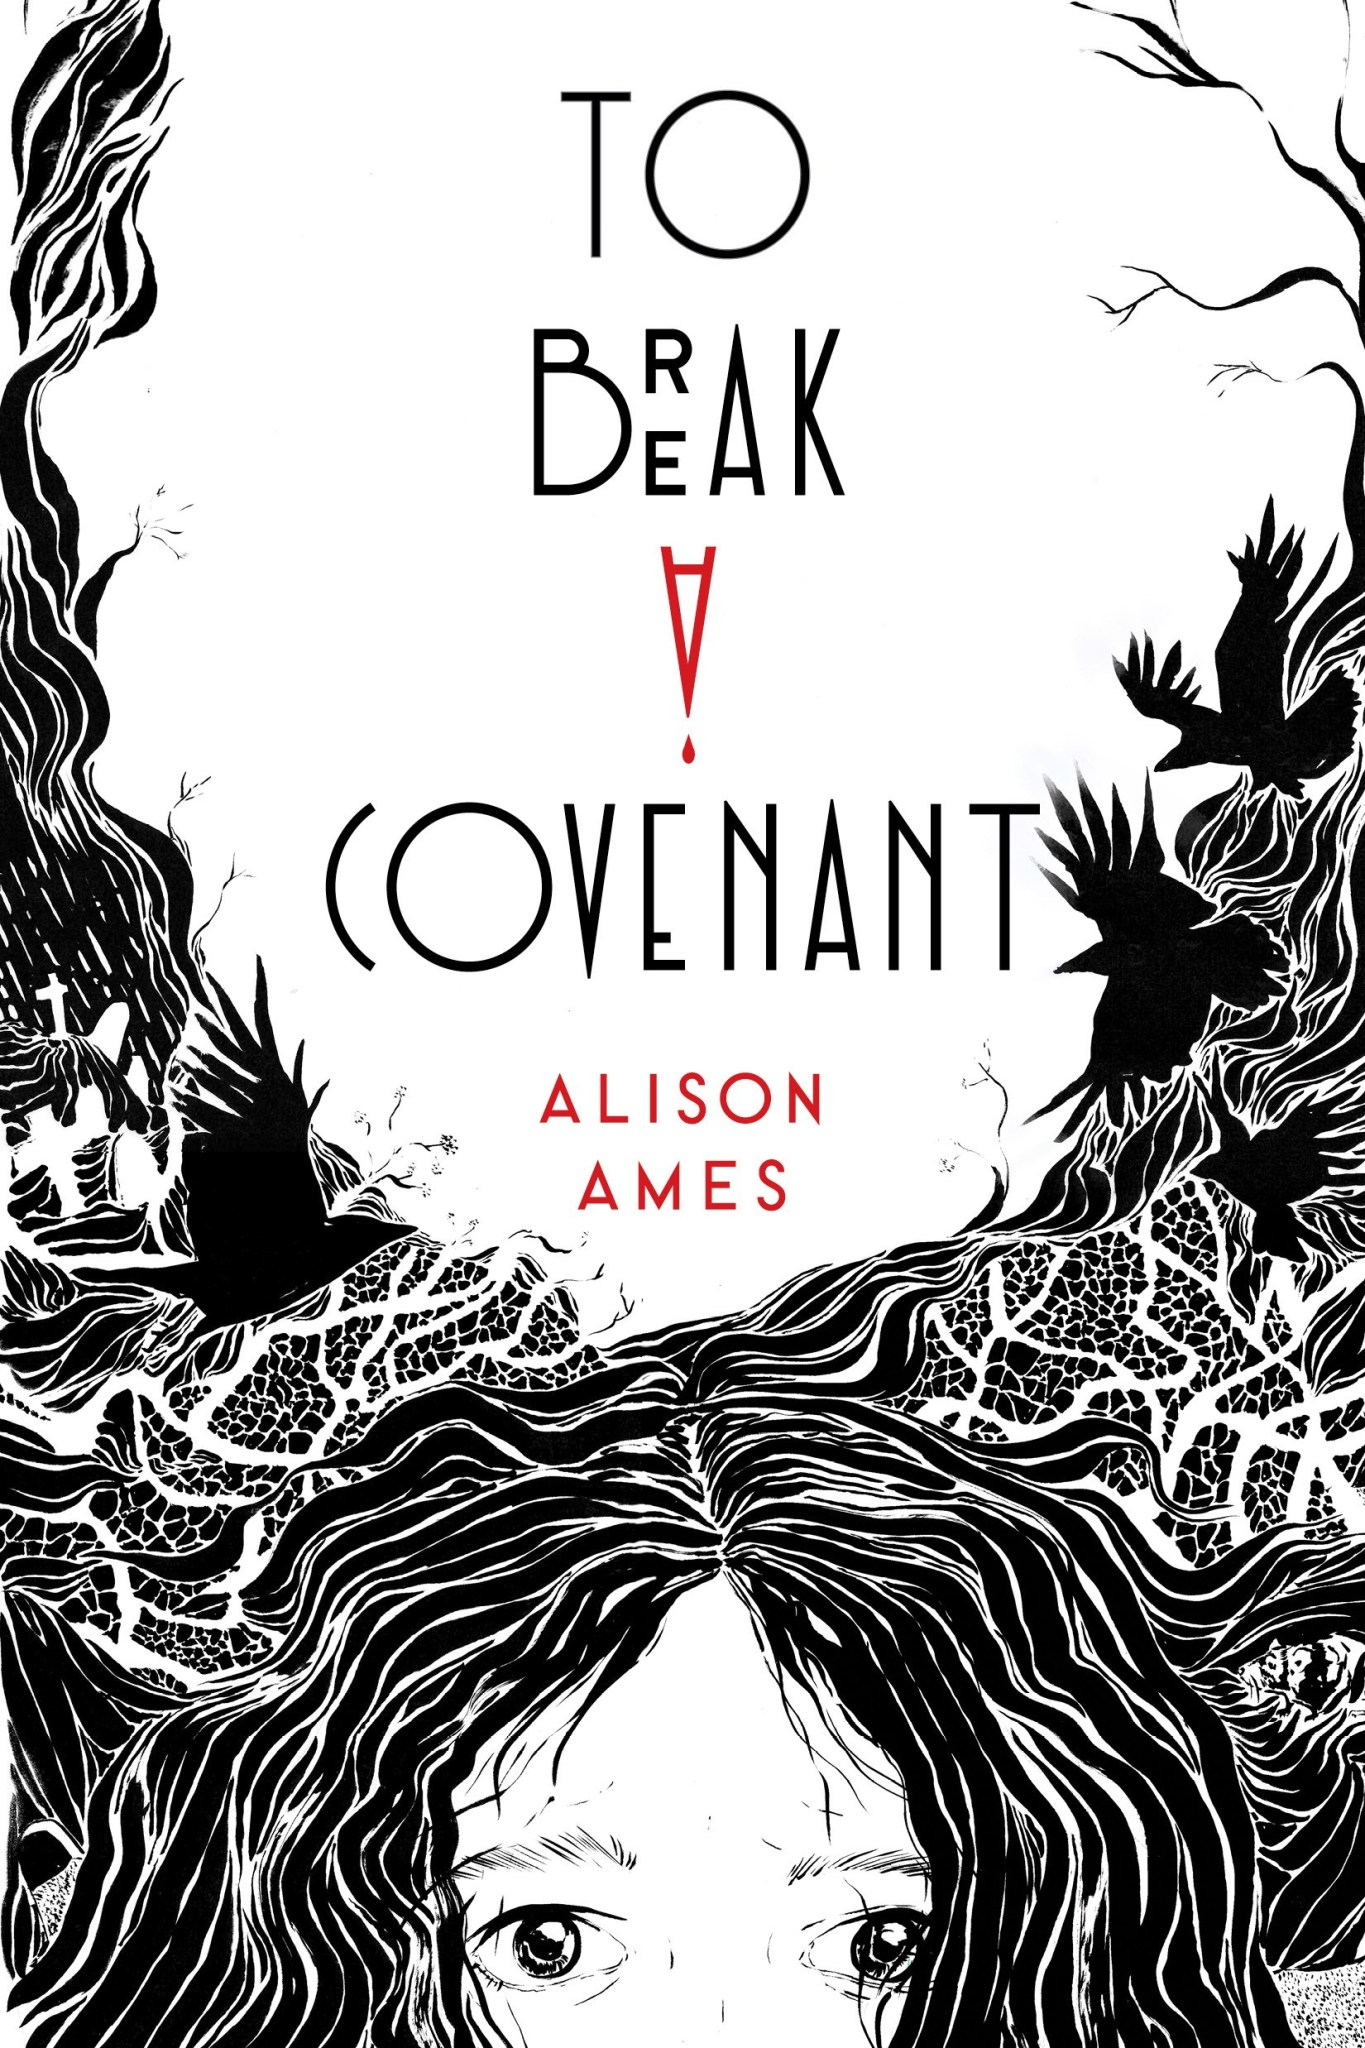 To Break a Covenant by Alison Ames